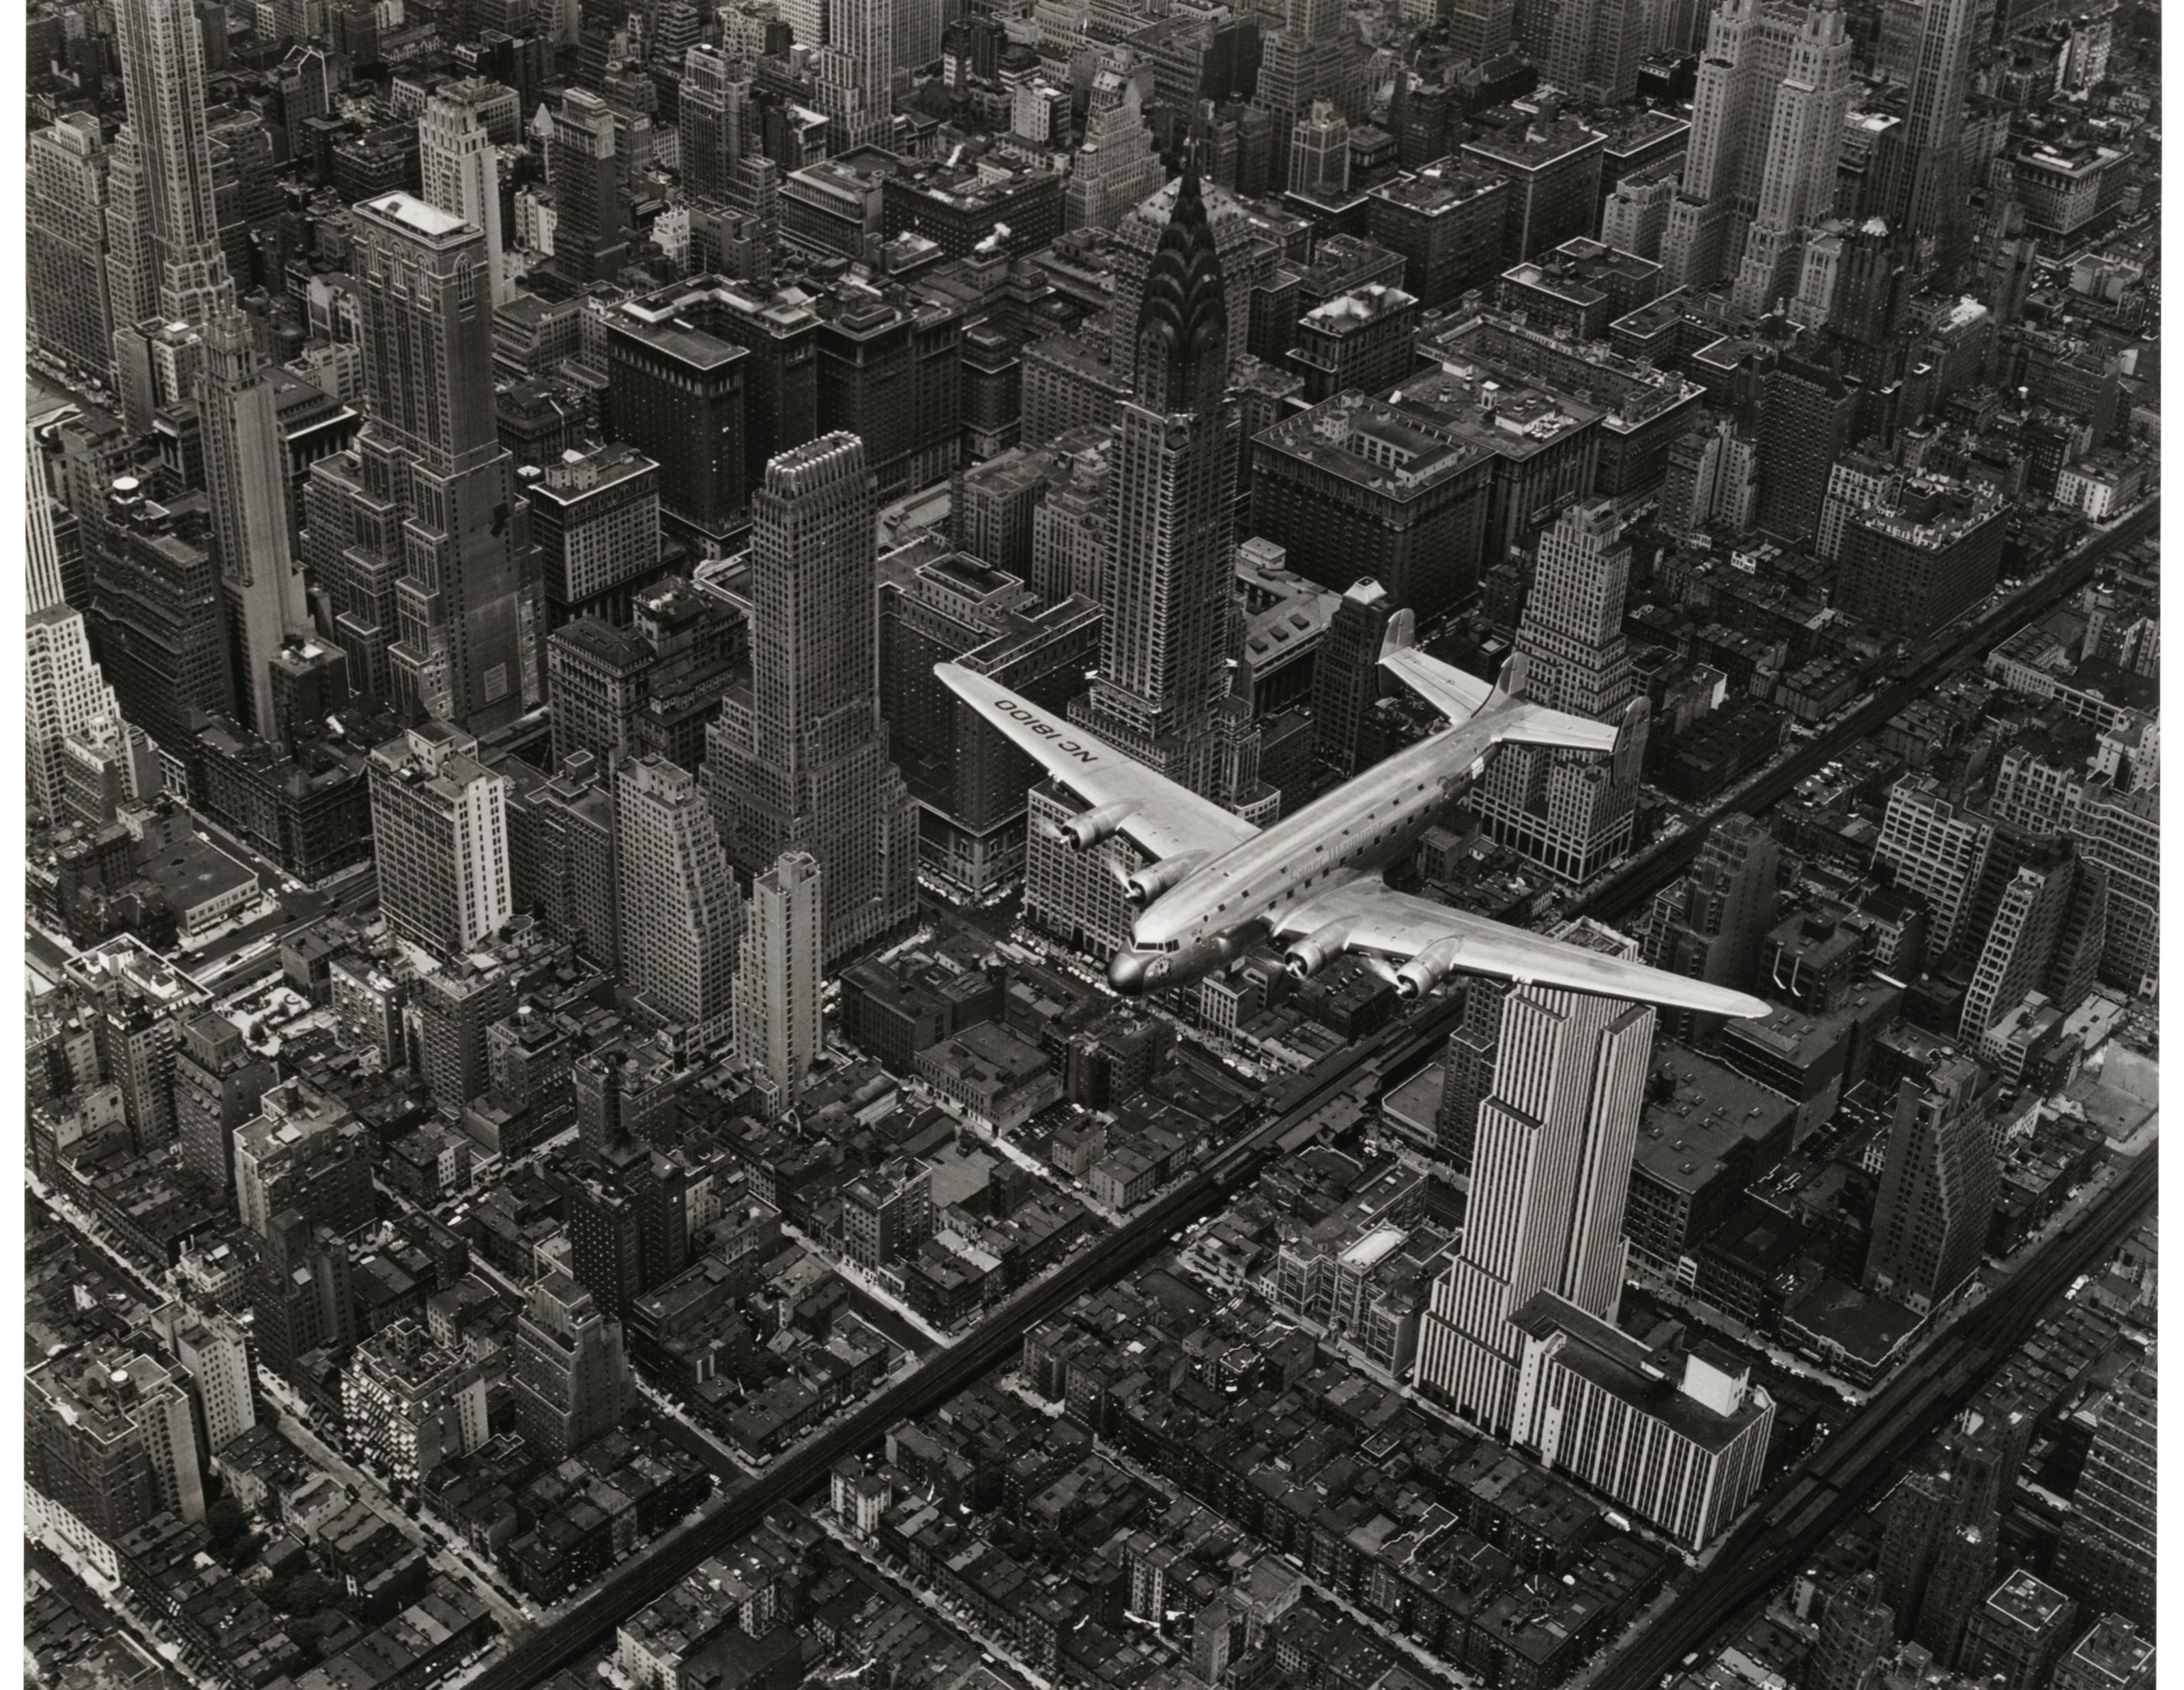 DC-4 Flying Over New York City